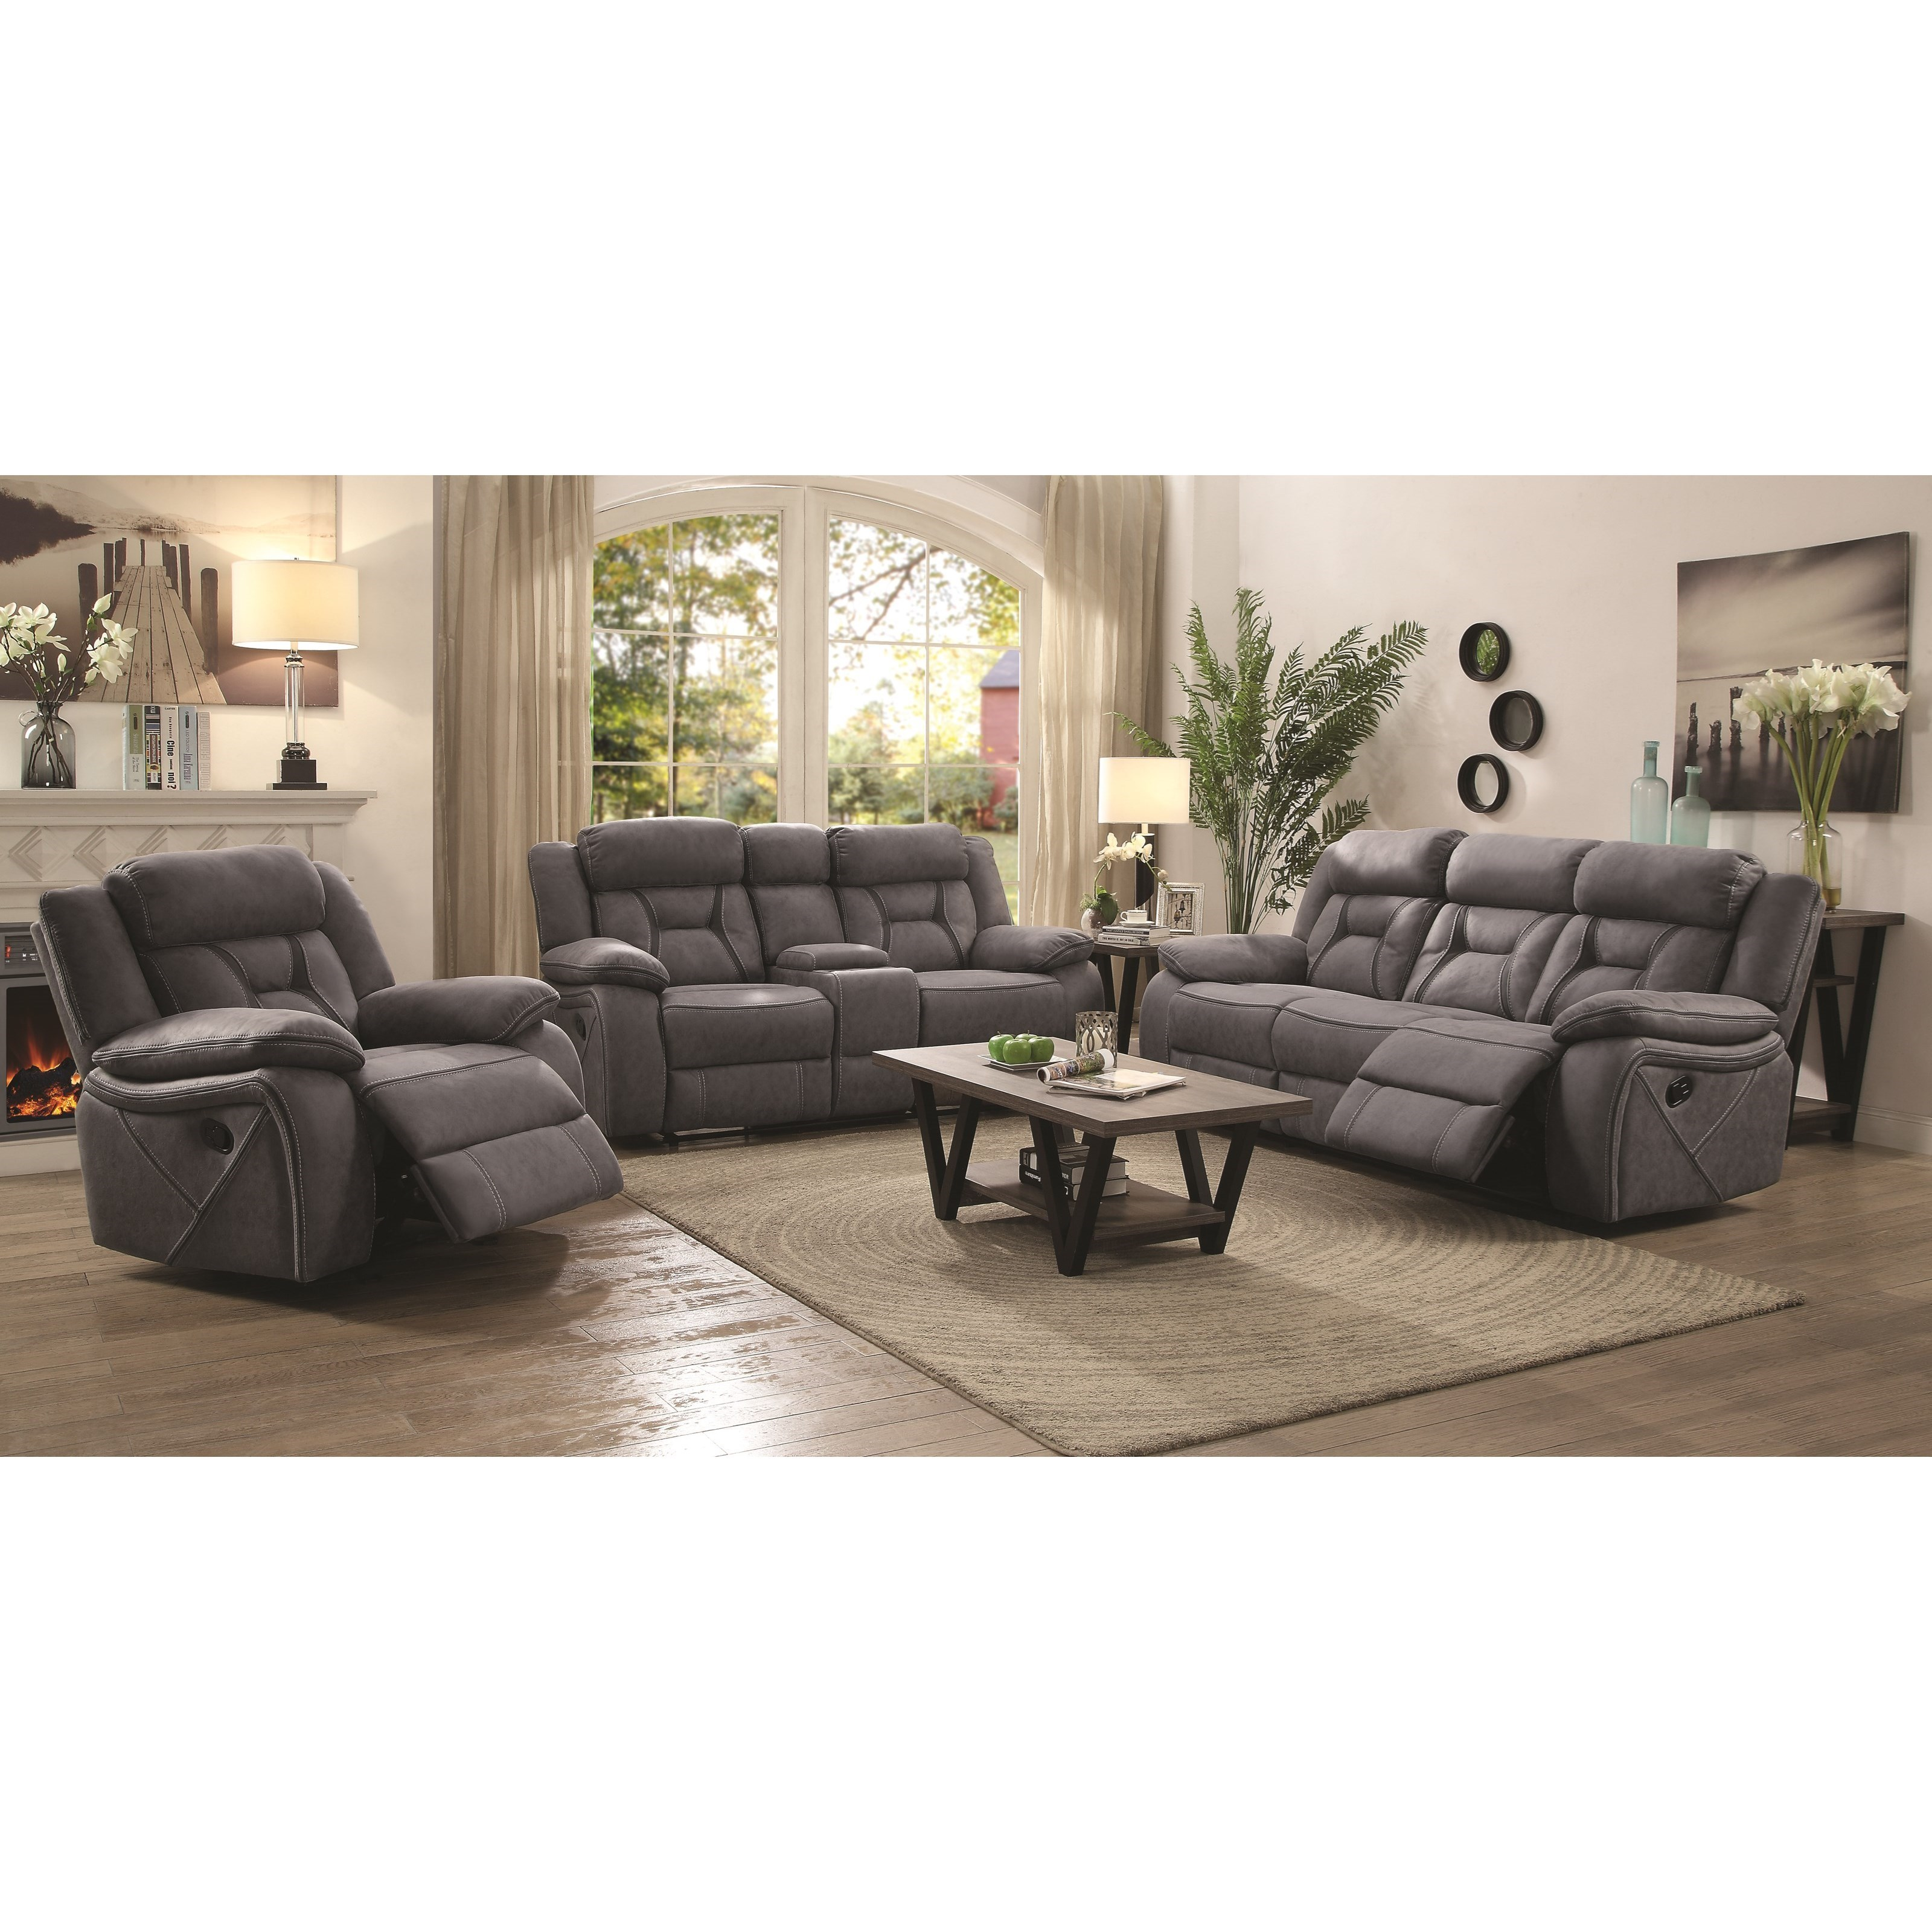 Charmant Coaster HoustonReclining Living Room Group